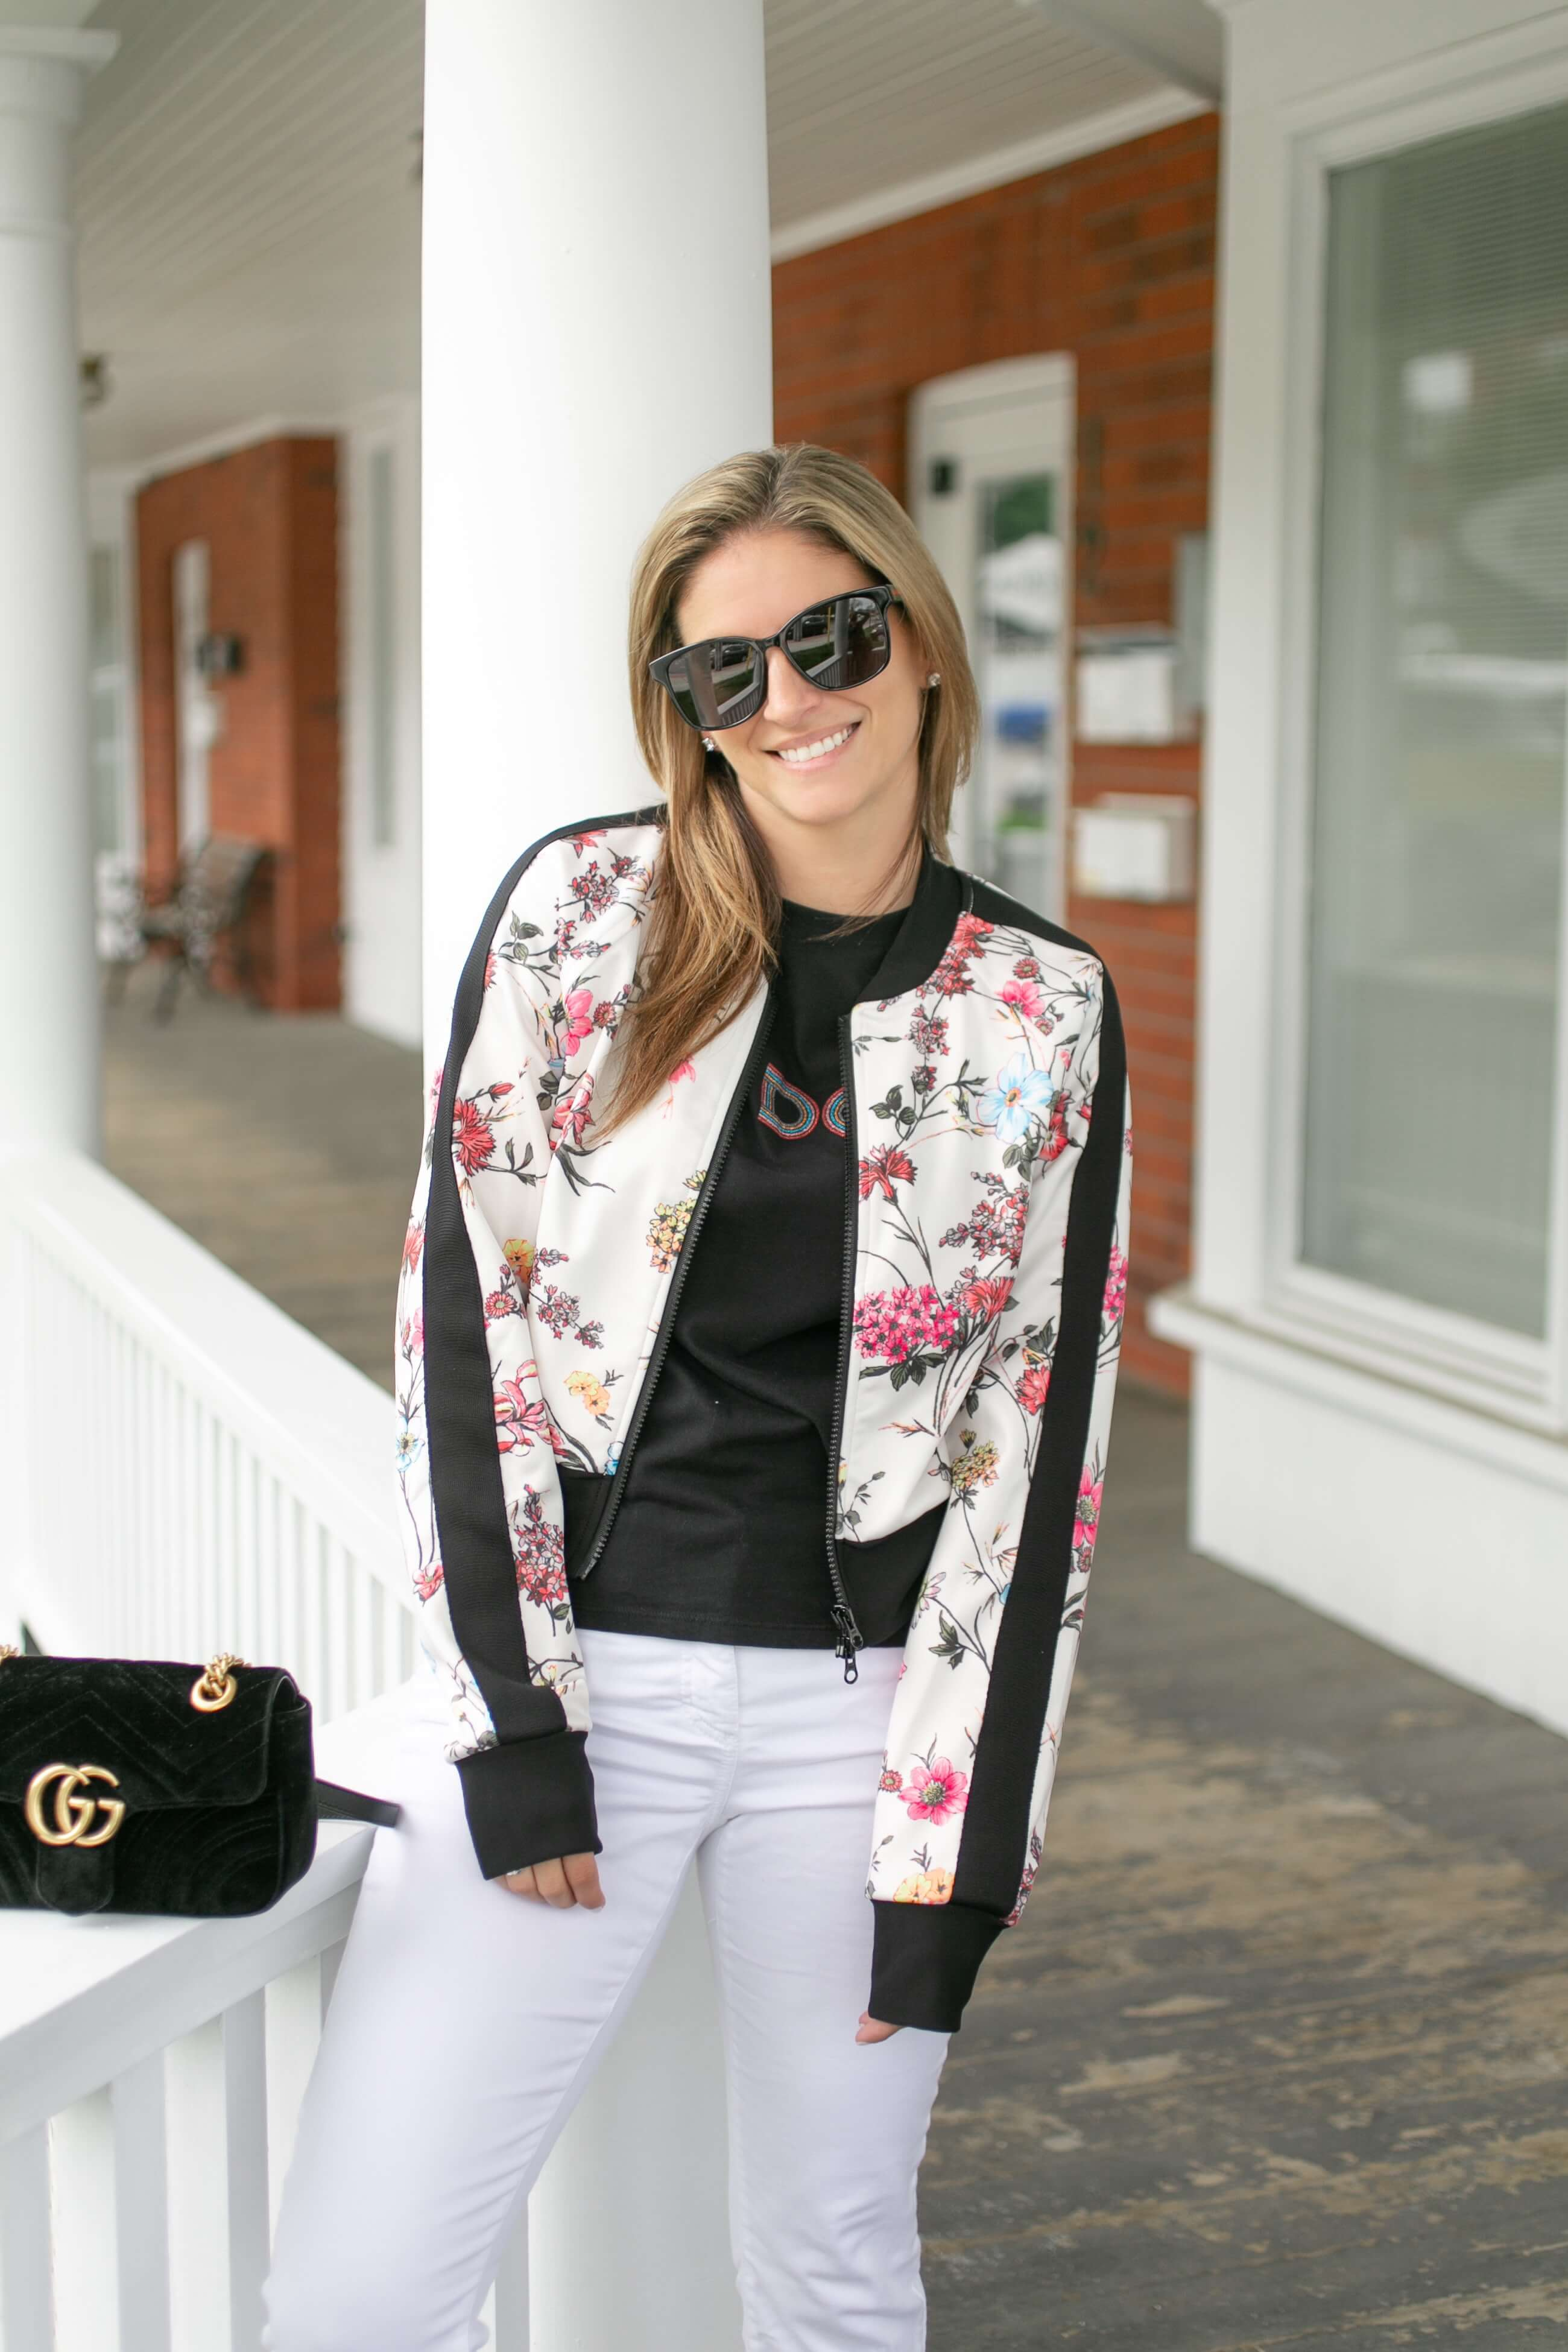 Garbo's Boutique Durham Region; Whitby Blogger Mandy Furnis